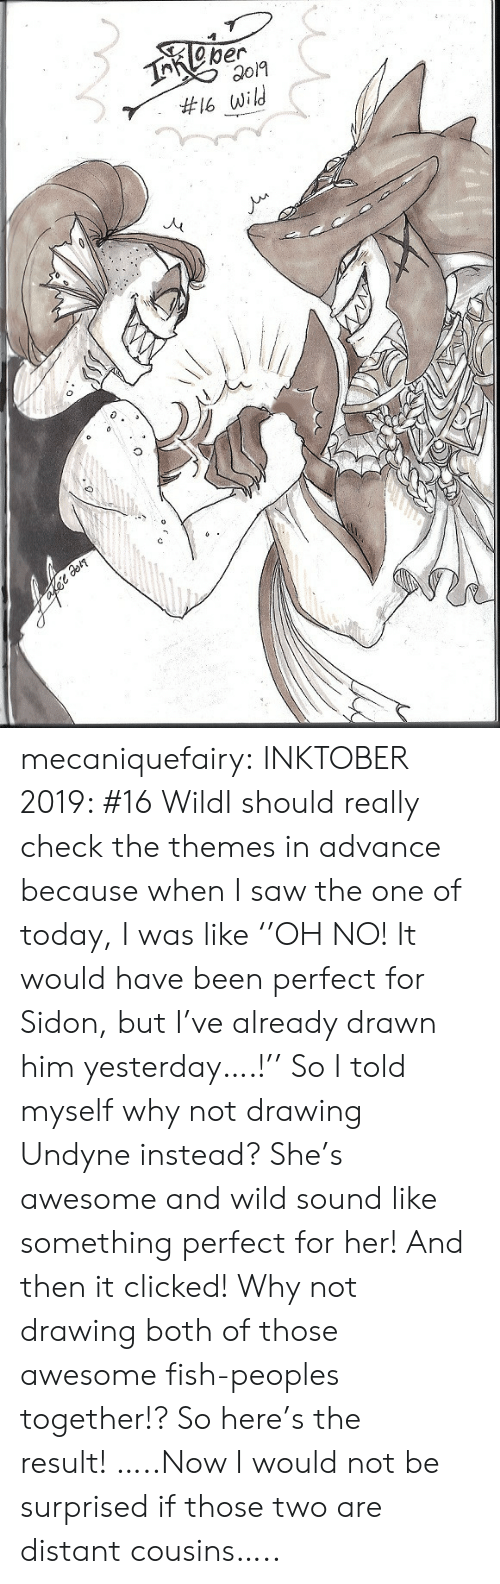 Saw, Tumblr, and Blog: TReper  #16 wild mecaniquefairy:  INKTOBER 2019: #16 WildI should really check the themes in advance because when I saw the one of today, I was like ''OH NO! It would have been perfect for Sidon, but I've already drawn him yesterday….!'' So I told myself why not drawing Undyne instead? She's awesome and wild sound like something perfect for her! And then it clicked! Why not drawing both of those awesome fish-peoples together!? So here's the result!…..Now I would not be surprised if those two are distant cousins…..